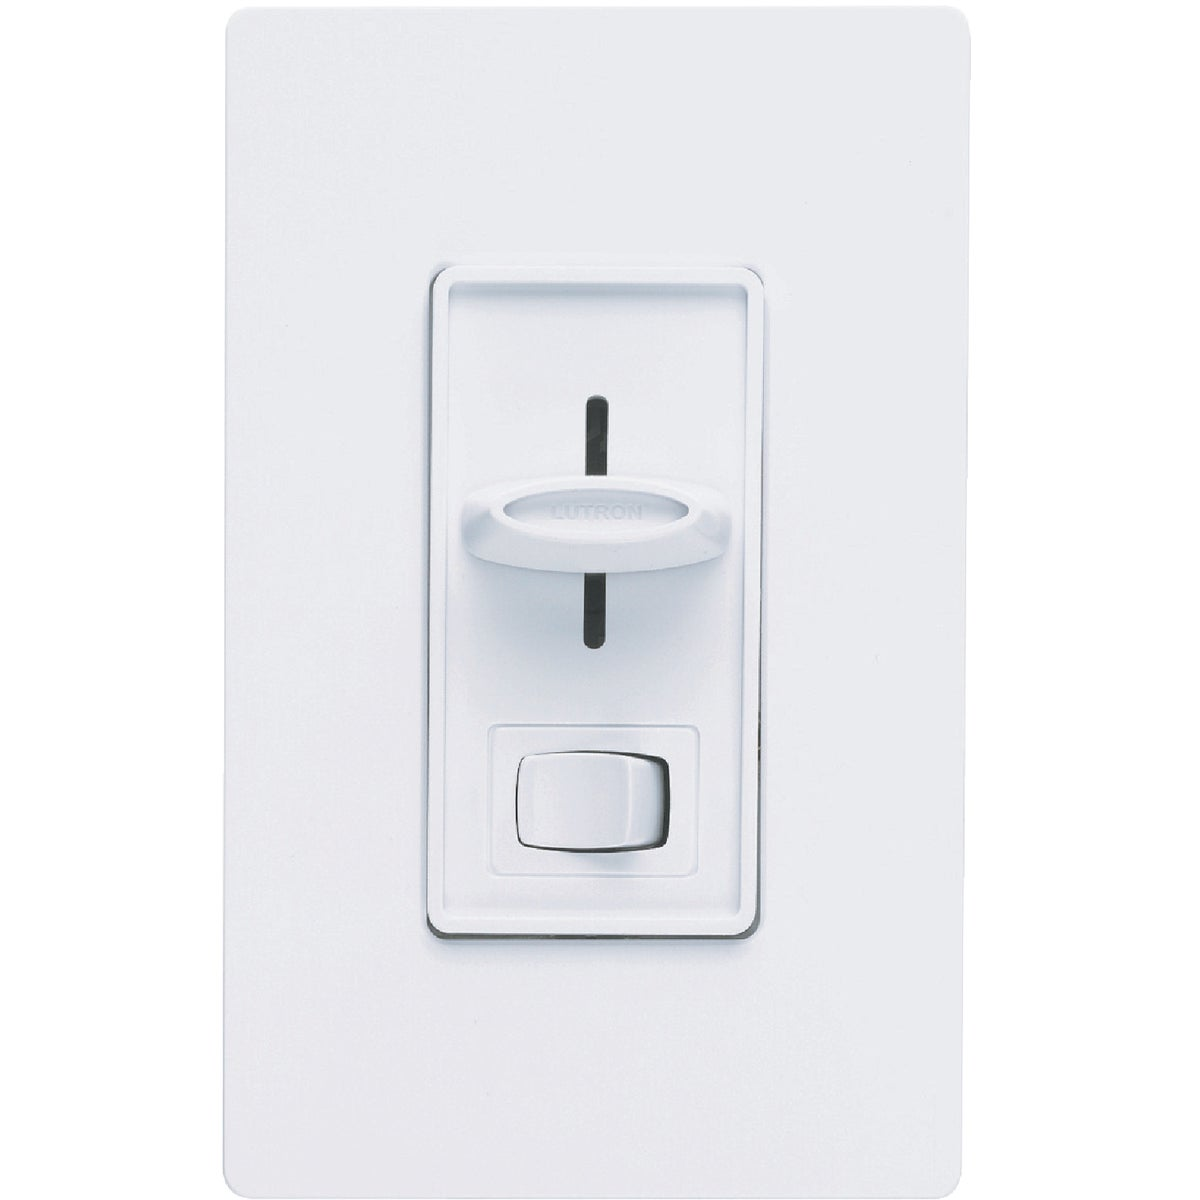 WHT SLIDE DIMMER - S-600PH-WH by Lutron Elect Co Inc